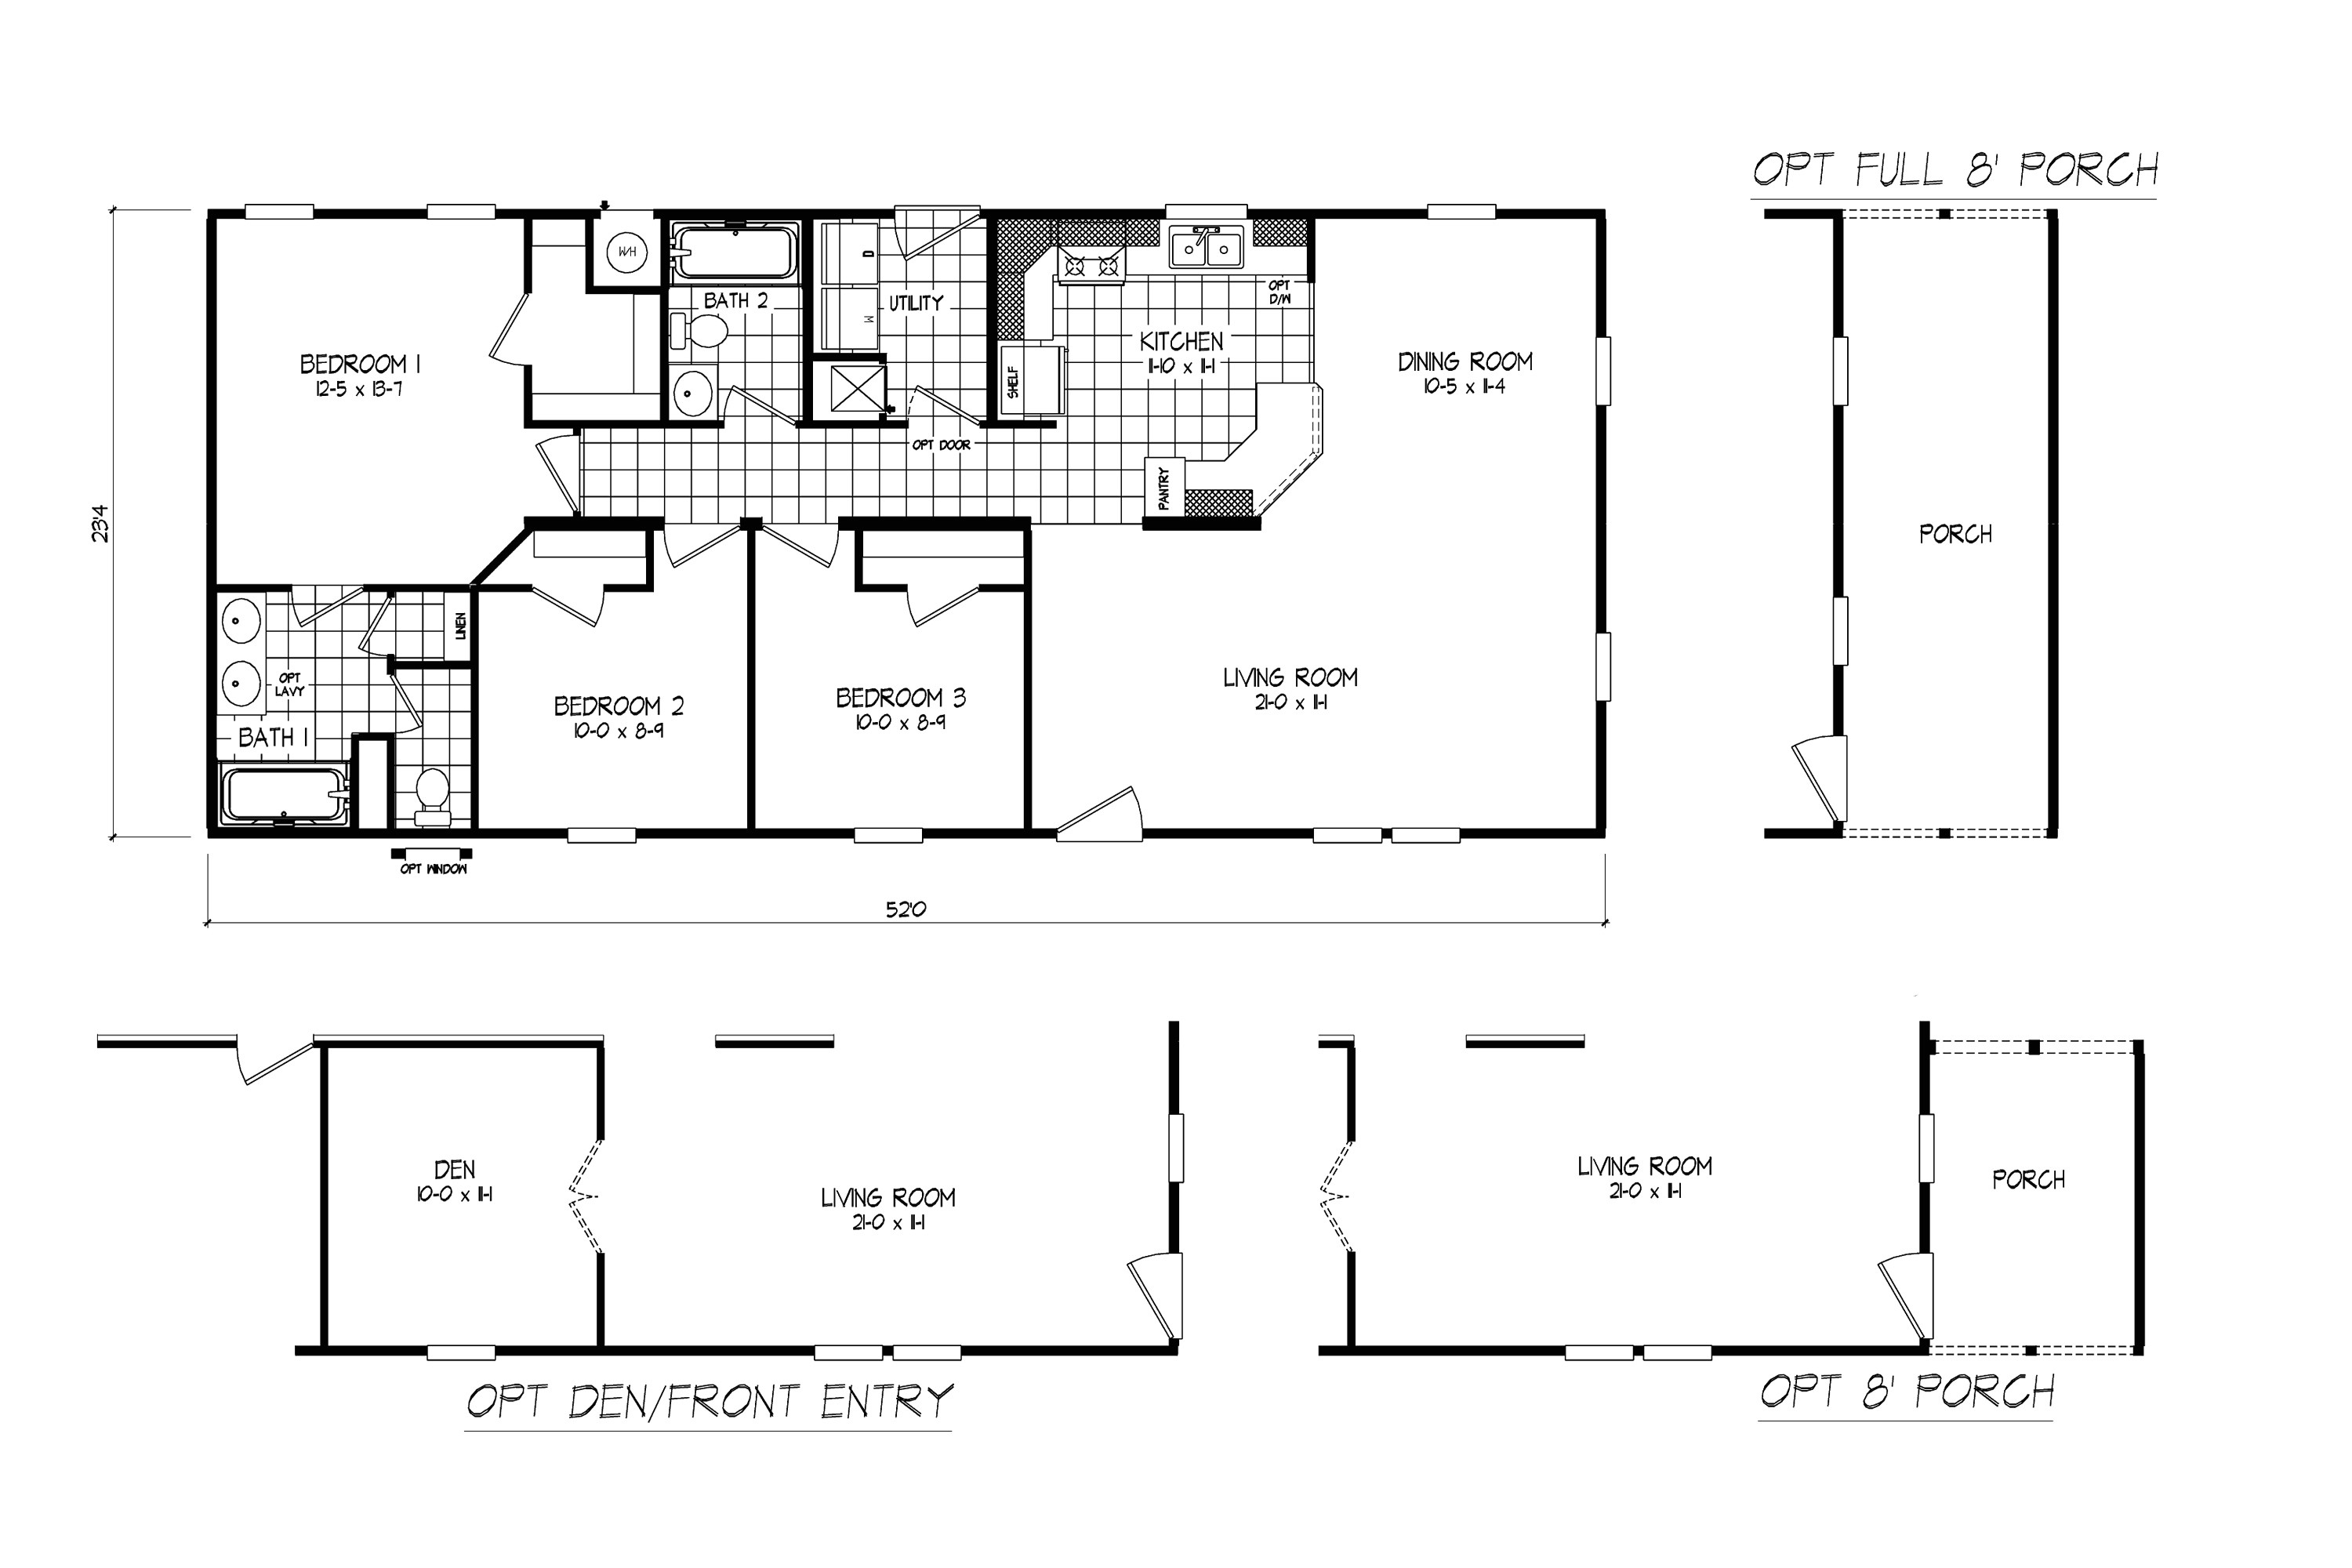 continental homes of texas floor plans